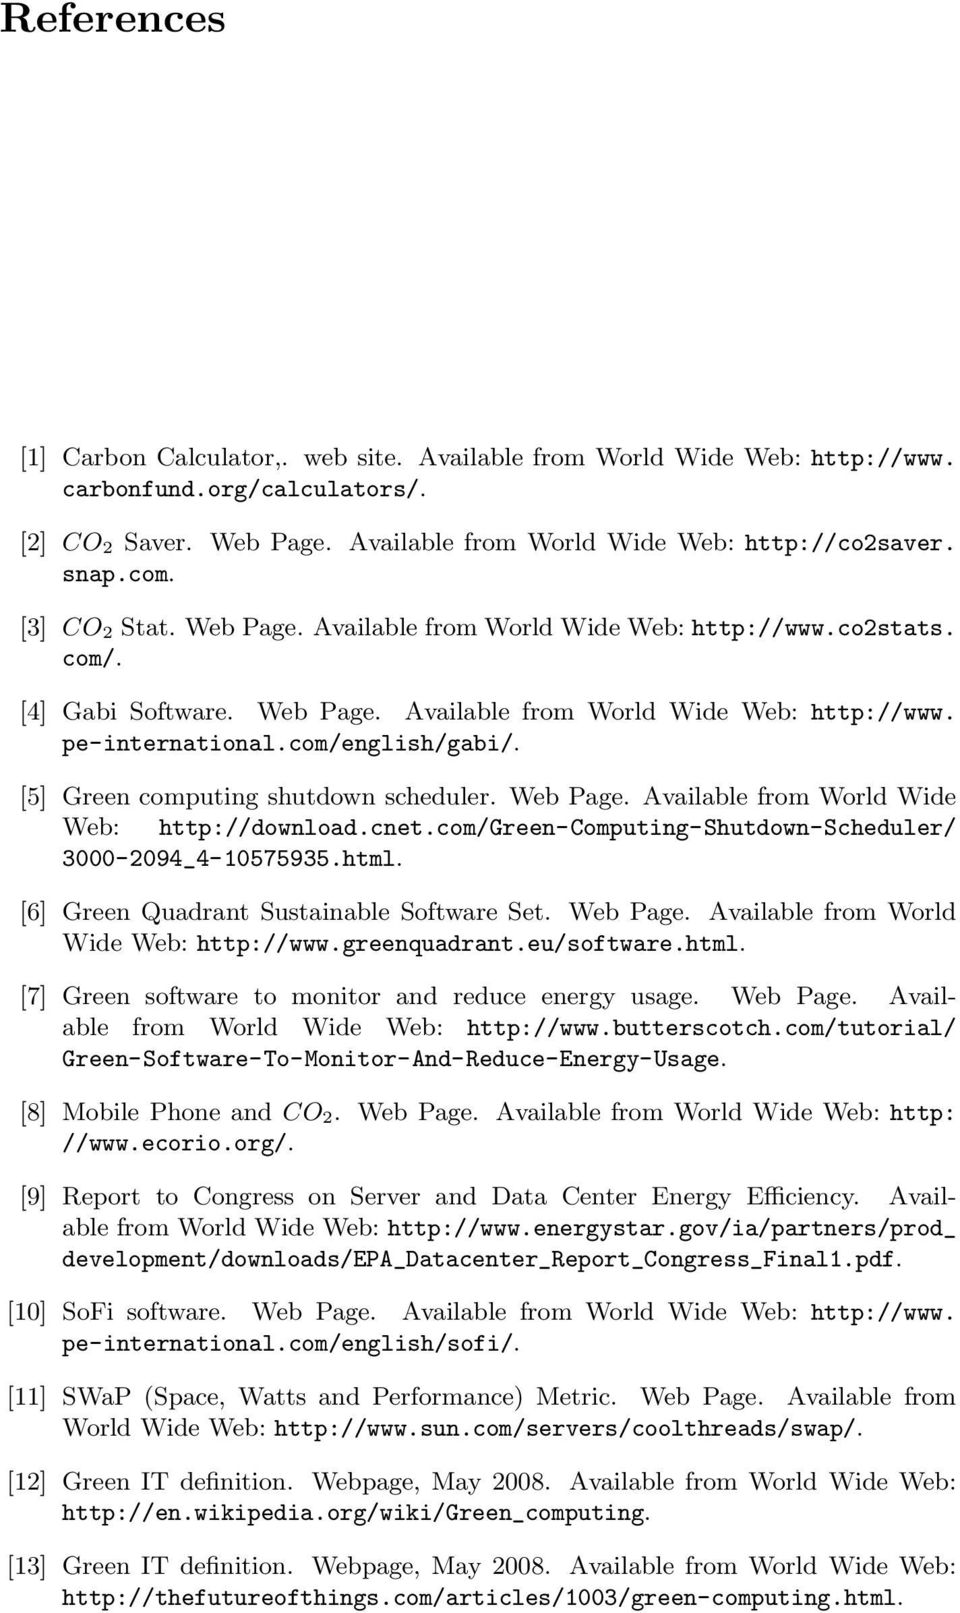 [5] Green computing shutdown scheduler. Web Page. Available from World Wide Web: http://download.cnet.com/green-computing-shutdown-scheduler/ 3000-2094_4-10575935.html.